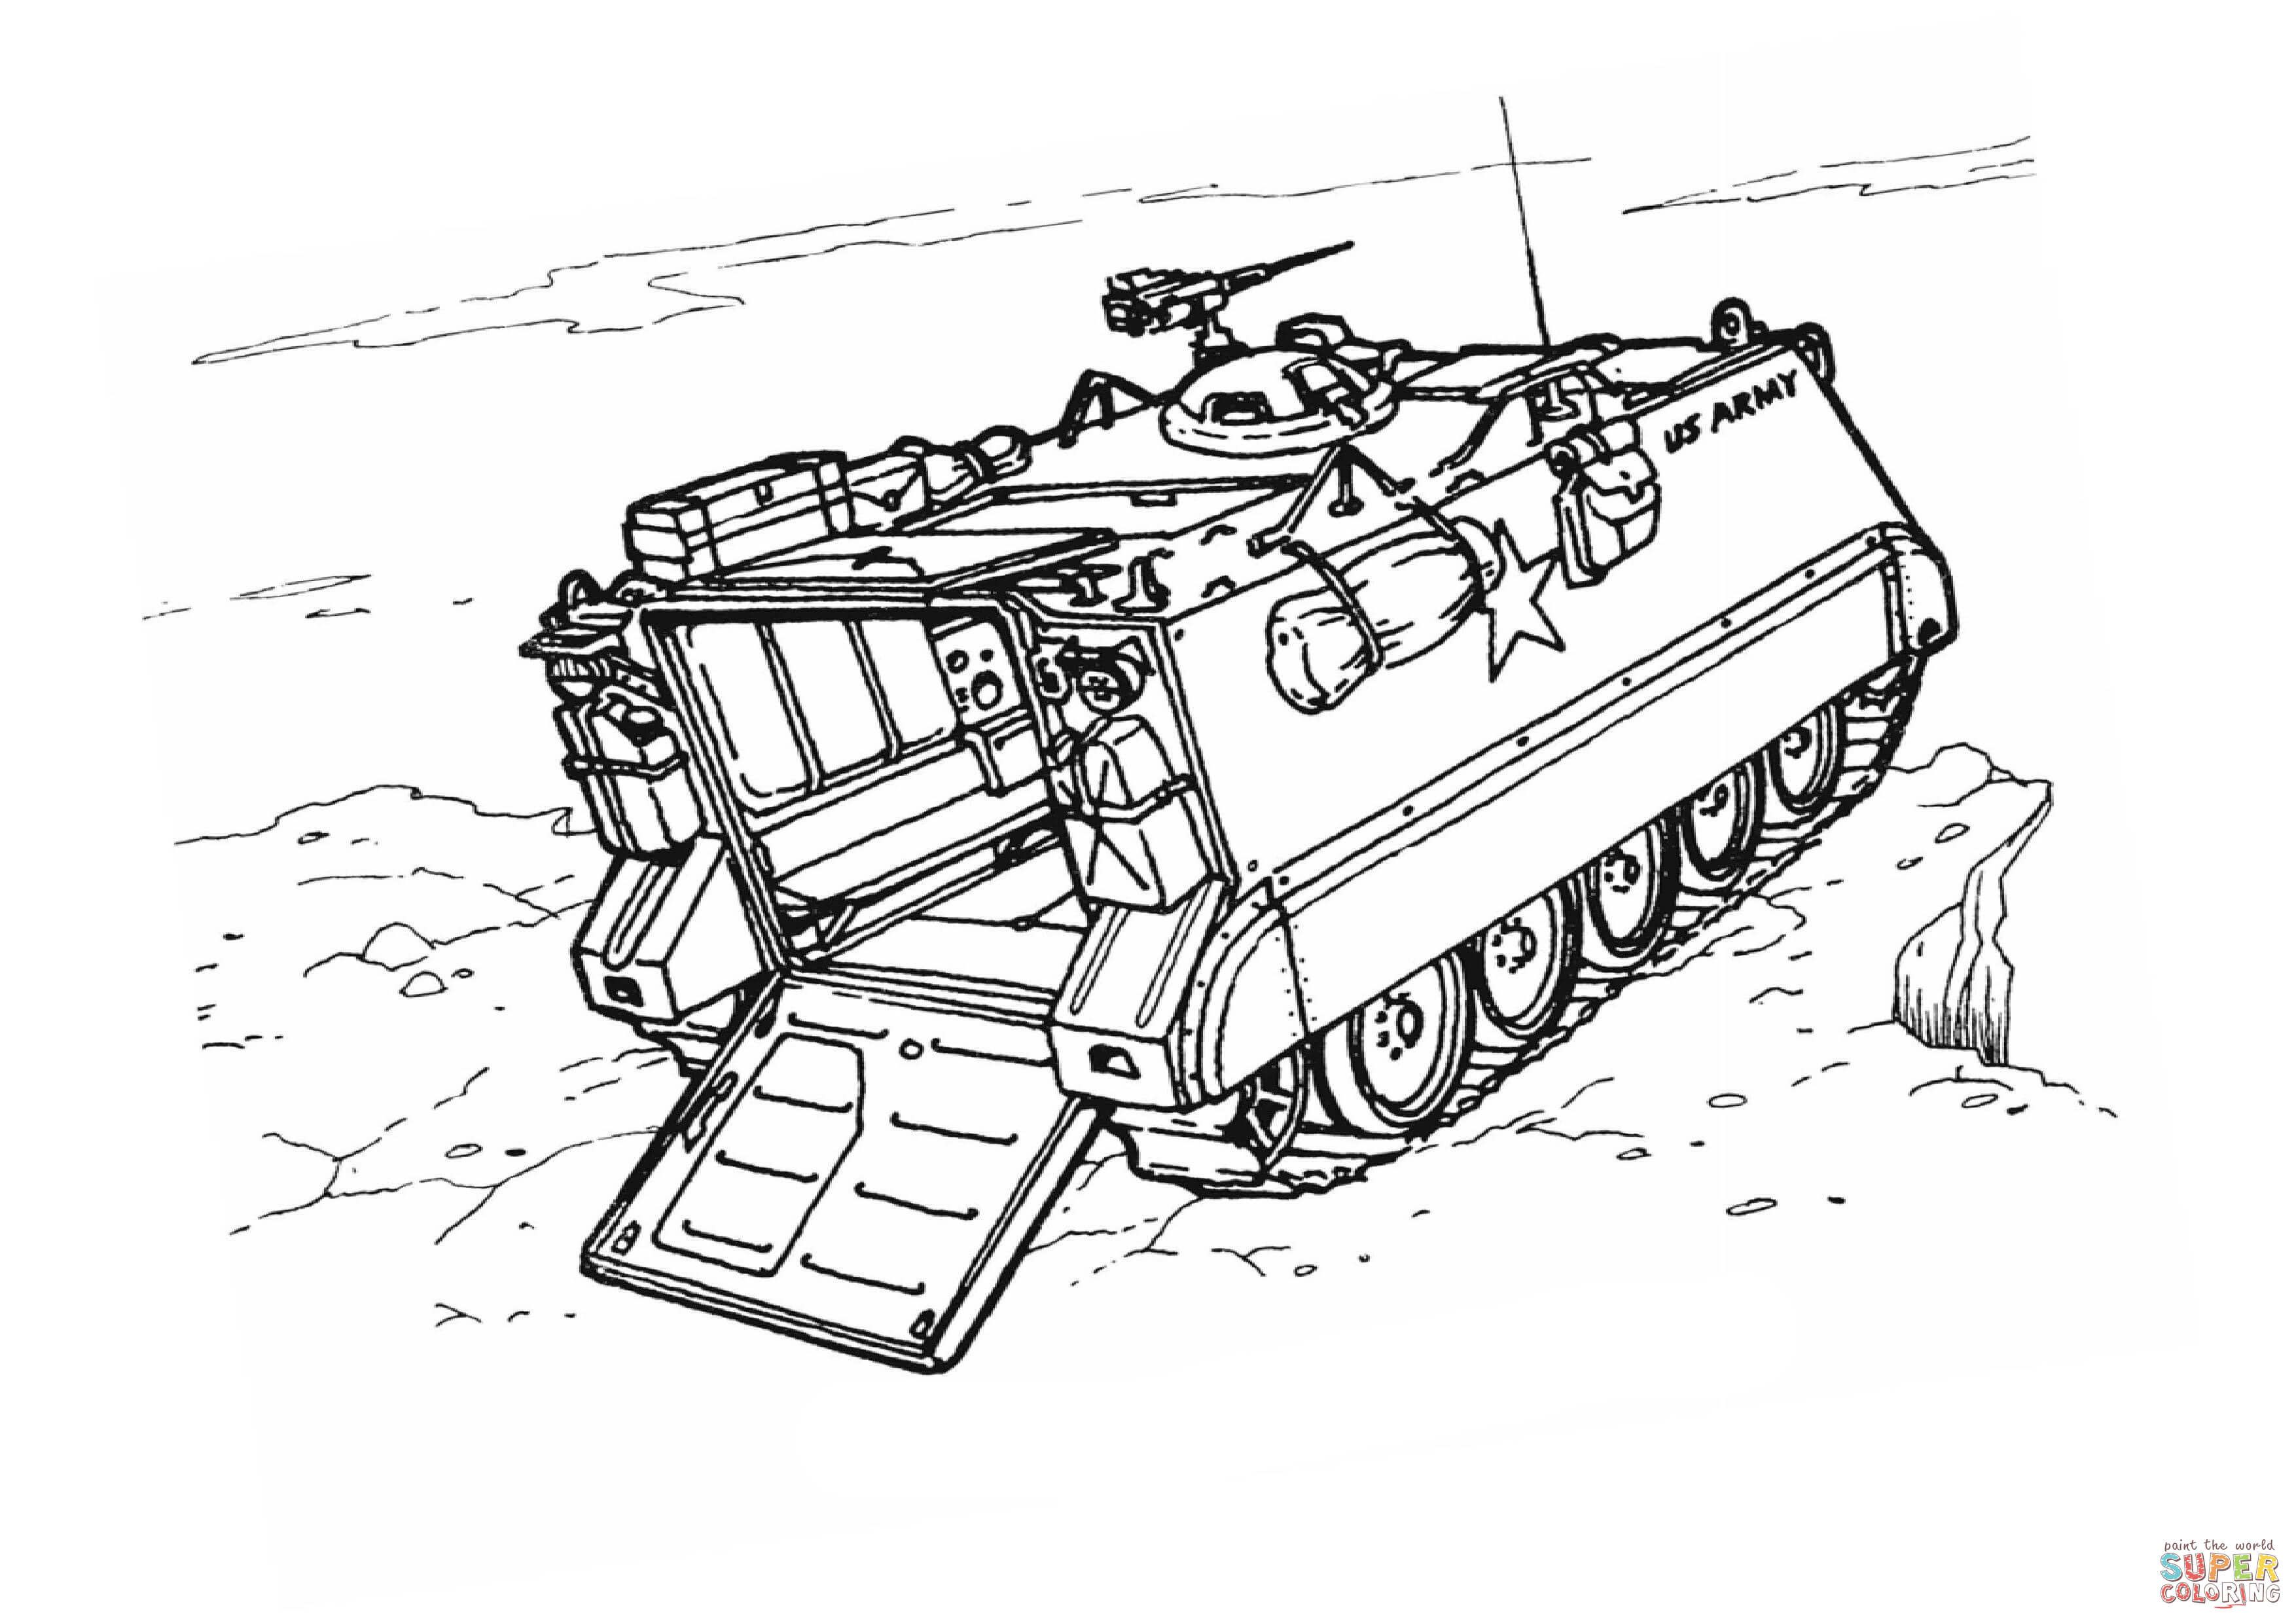 m113 armored personnel carrier super coloring armoured personnel carrierfree printablesoldierscoloringmilitaryfree printablesmilitary man - Army Tank Coloring Pages Print